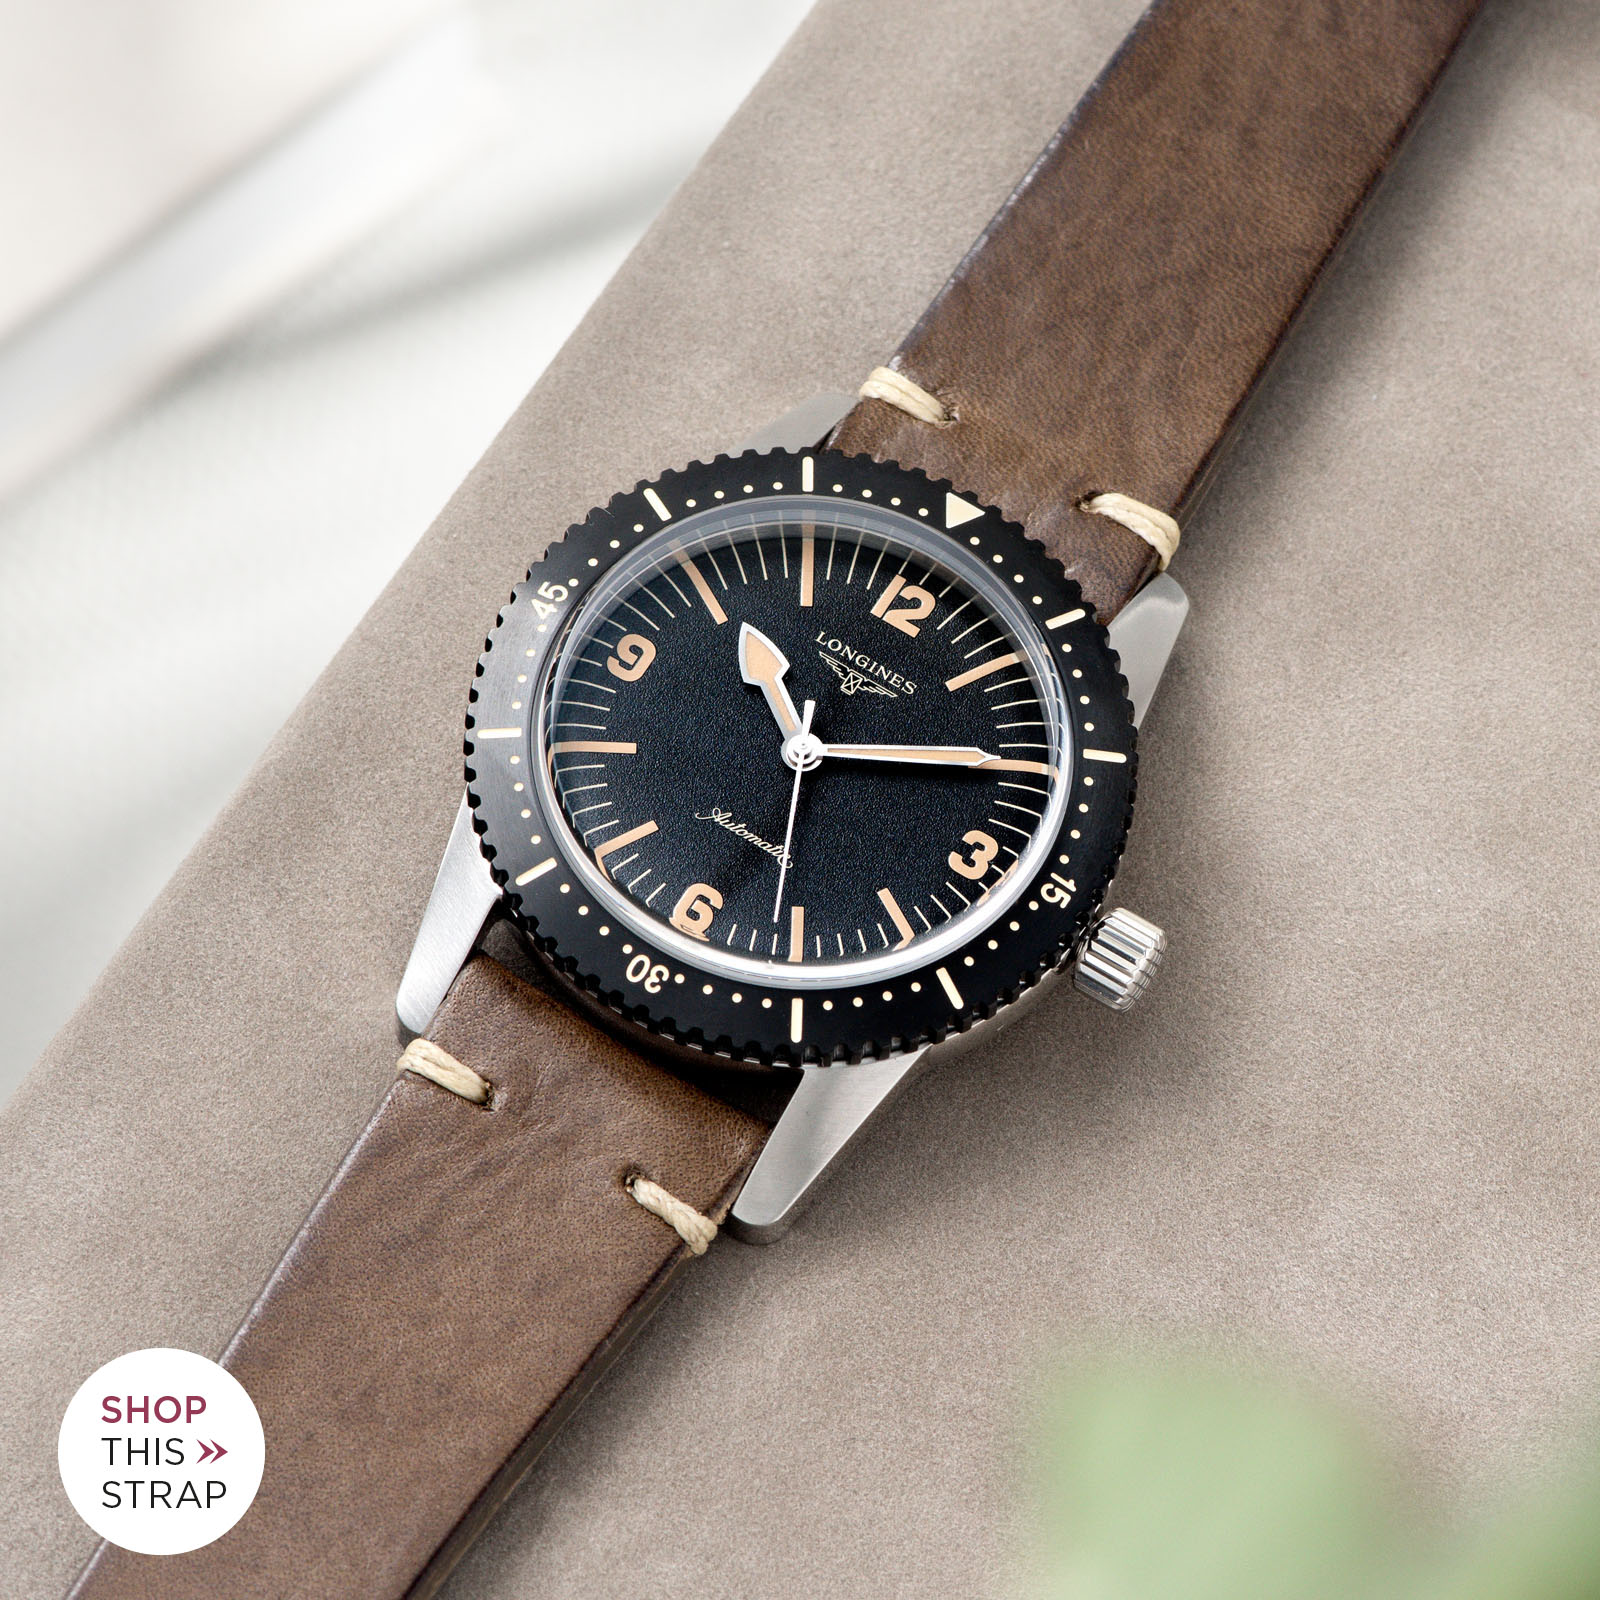 Bulang and Sons_Strap Guide_Longines Skin Diver_Smokeyjack Grey Leather Watch Strap